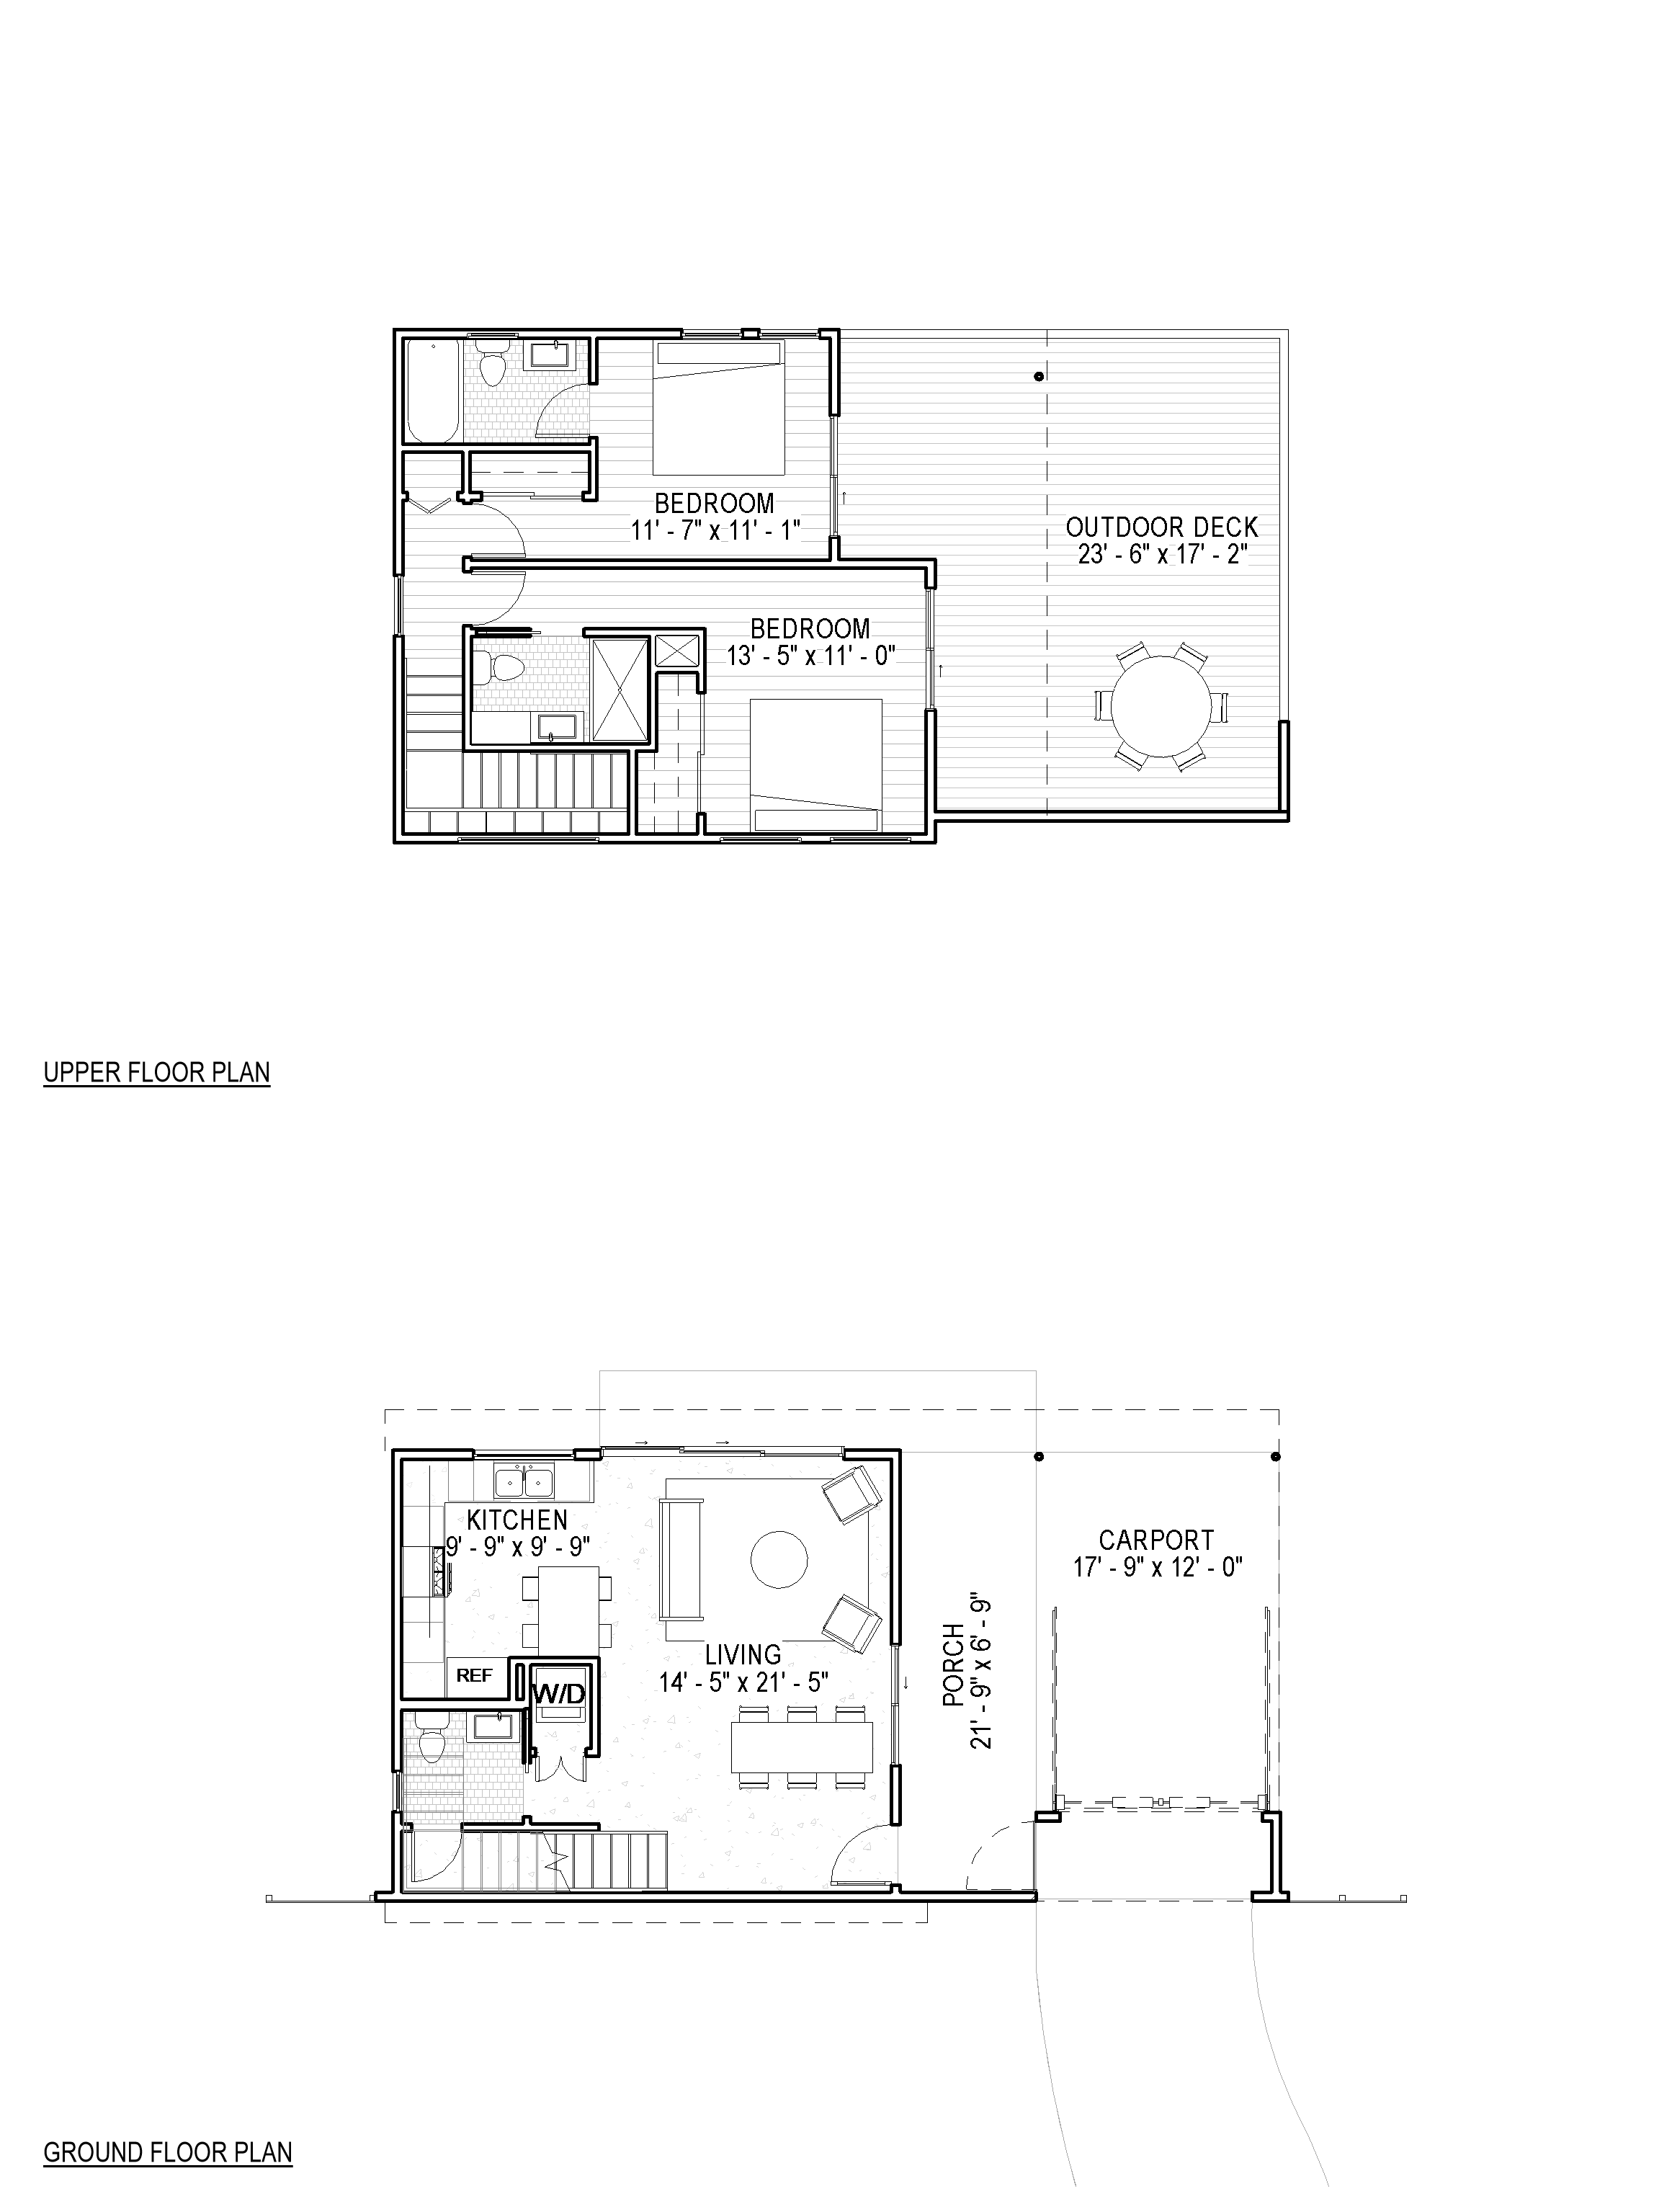 504 Krebs Unit B Marketing Floor Plans.png